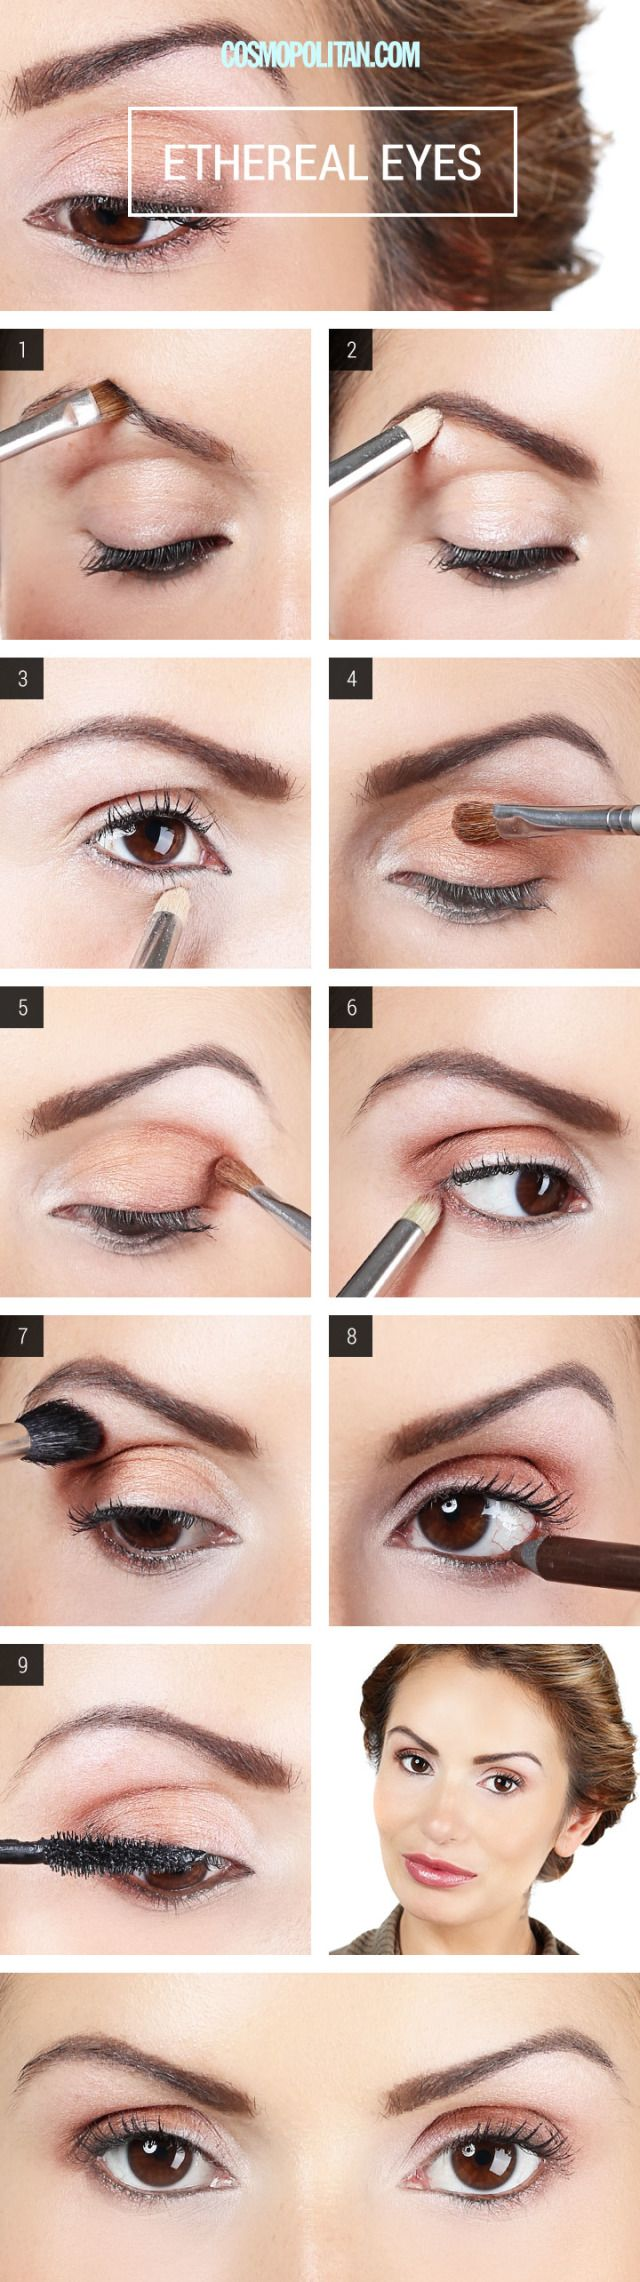 How To Apply Champagne Eyeshadow - Eye Makeup Tutorial